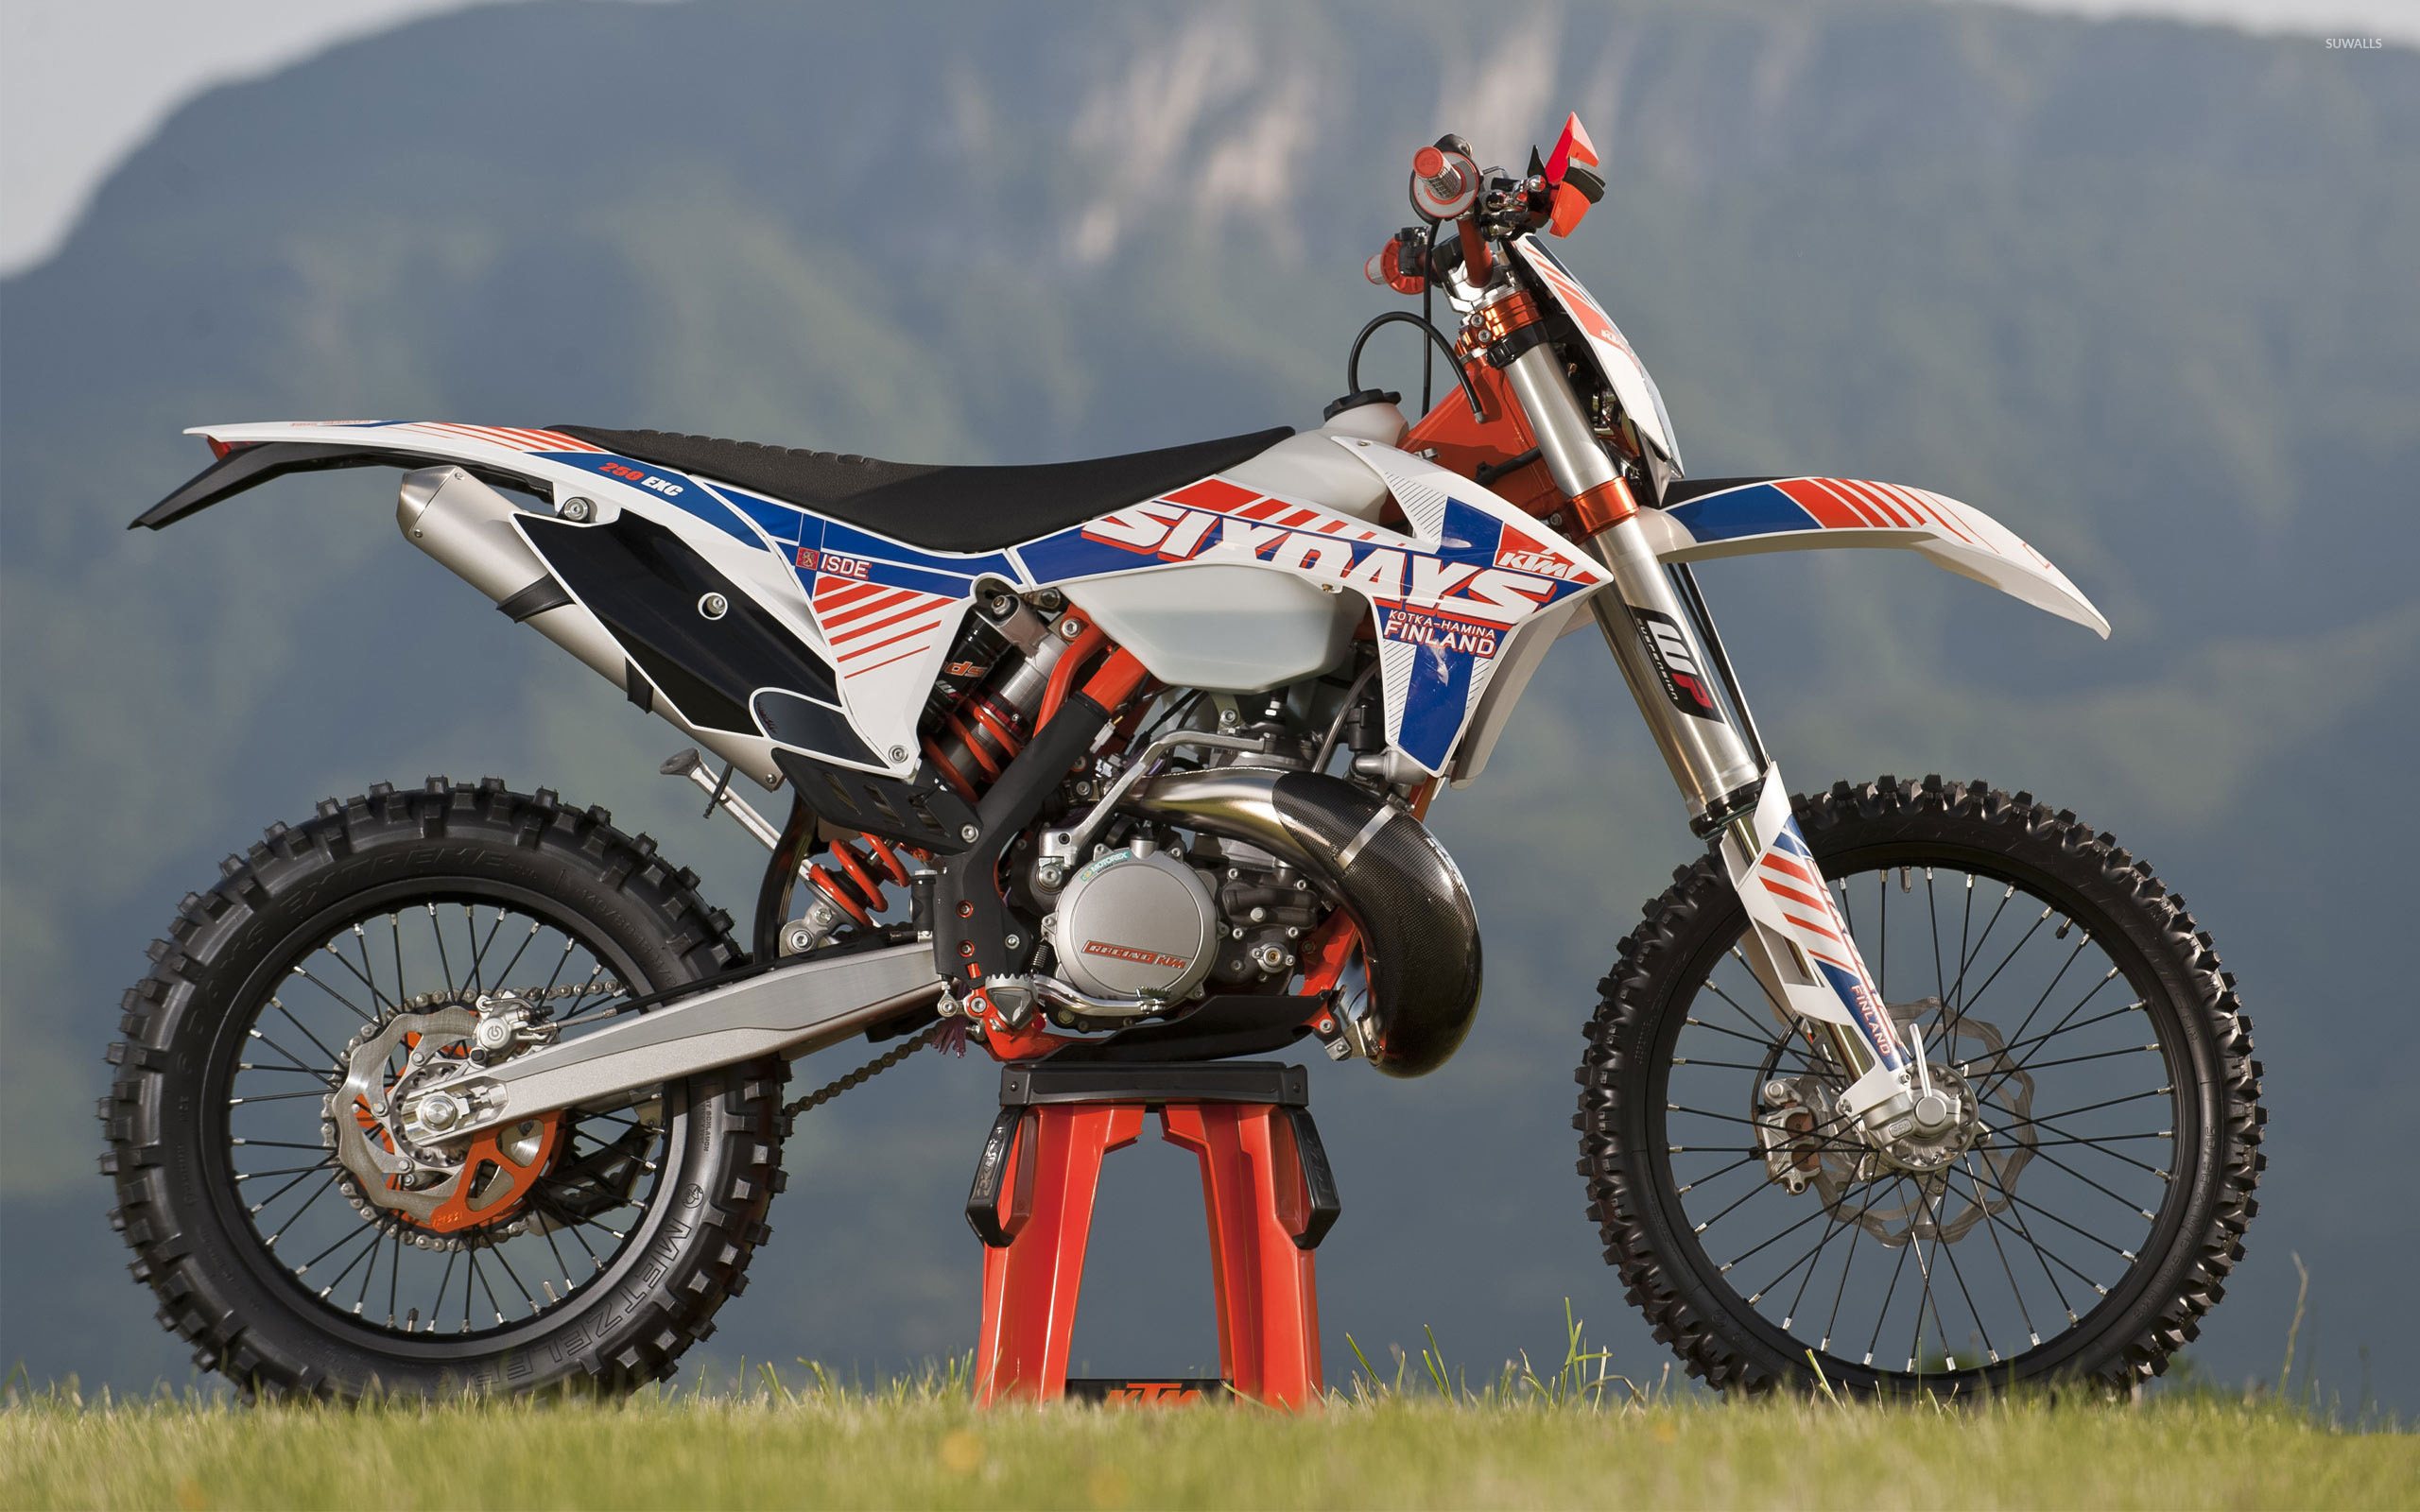 Ktm 250 Exc Side View Wallpaper Motorcycle Wallpapers 54373